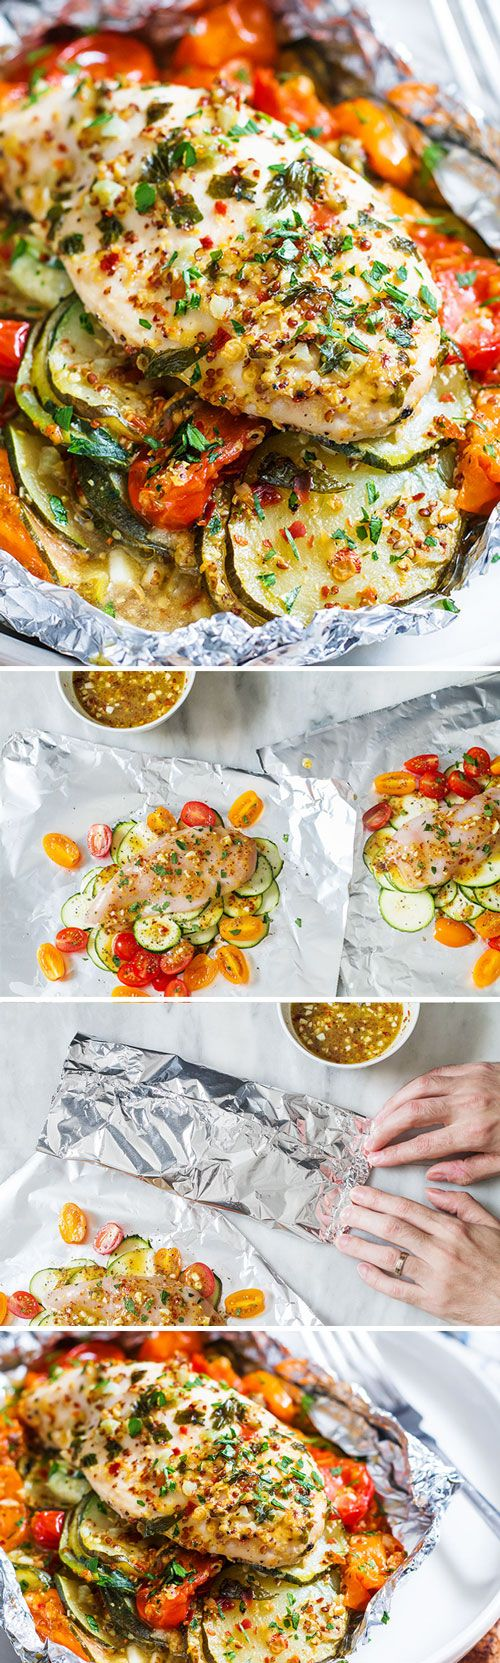 These honey dijon chicken and veggies foil packs make for a savory and nourishing dish, perfect for a quick and healthy dinner. Chicken breasts seasoned in a honey-mustard sauce are baked in foil t…